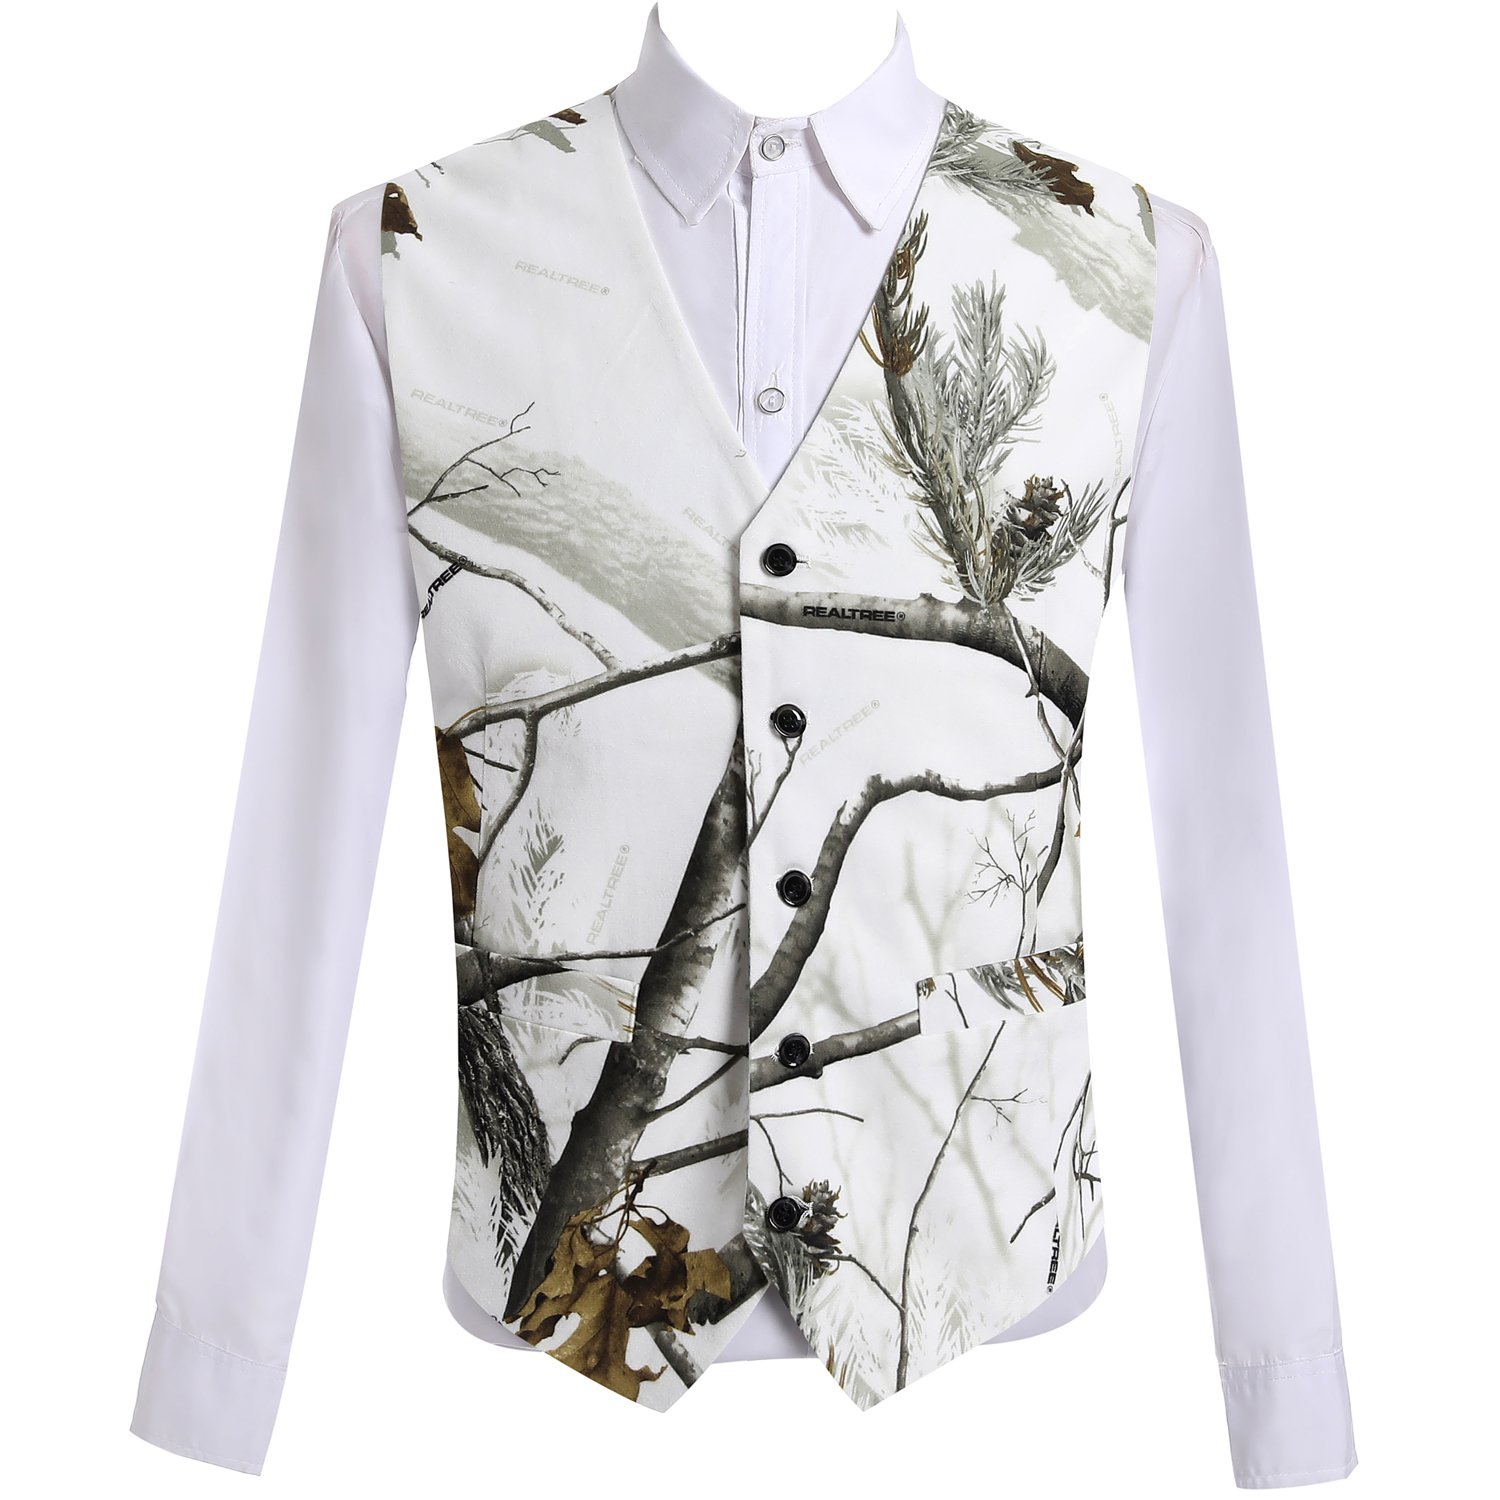 HBDesign Mens 1 Piece 5 Button Real Tree Camo White Slim Fit V-Neck Vests HMV005 WH Camo